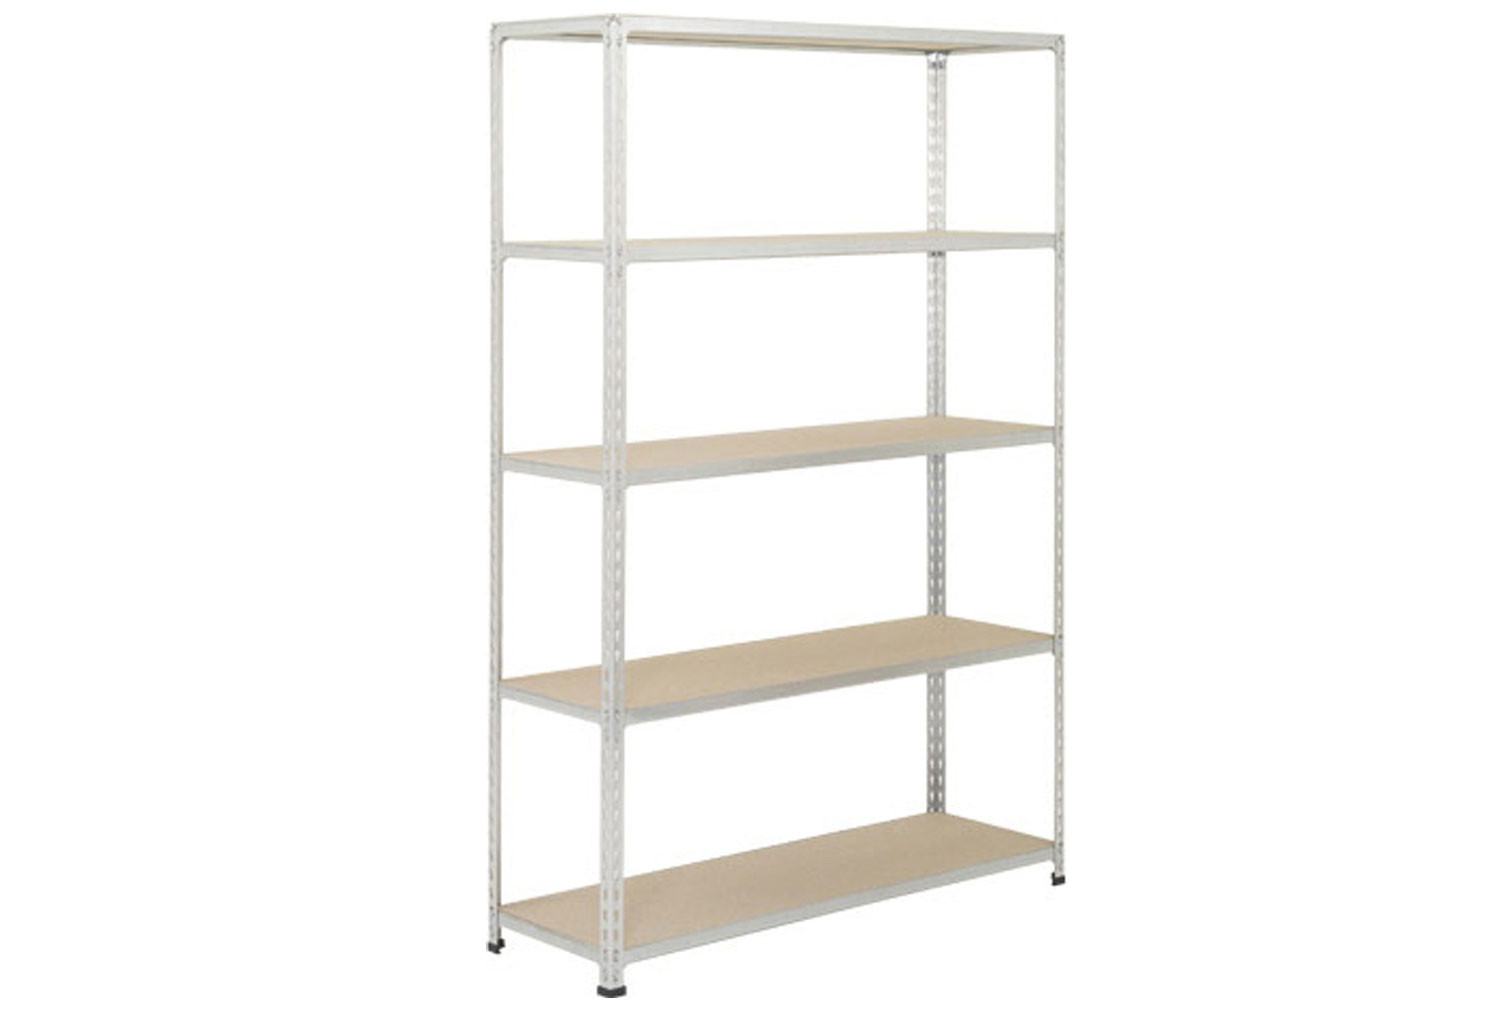 Rapid 2 Shelving With 5 Chipboard Shelves 1220wx1600h (Grey)